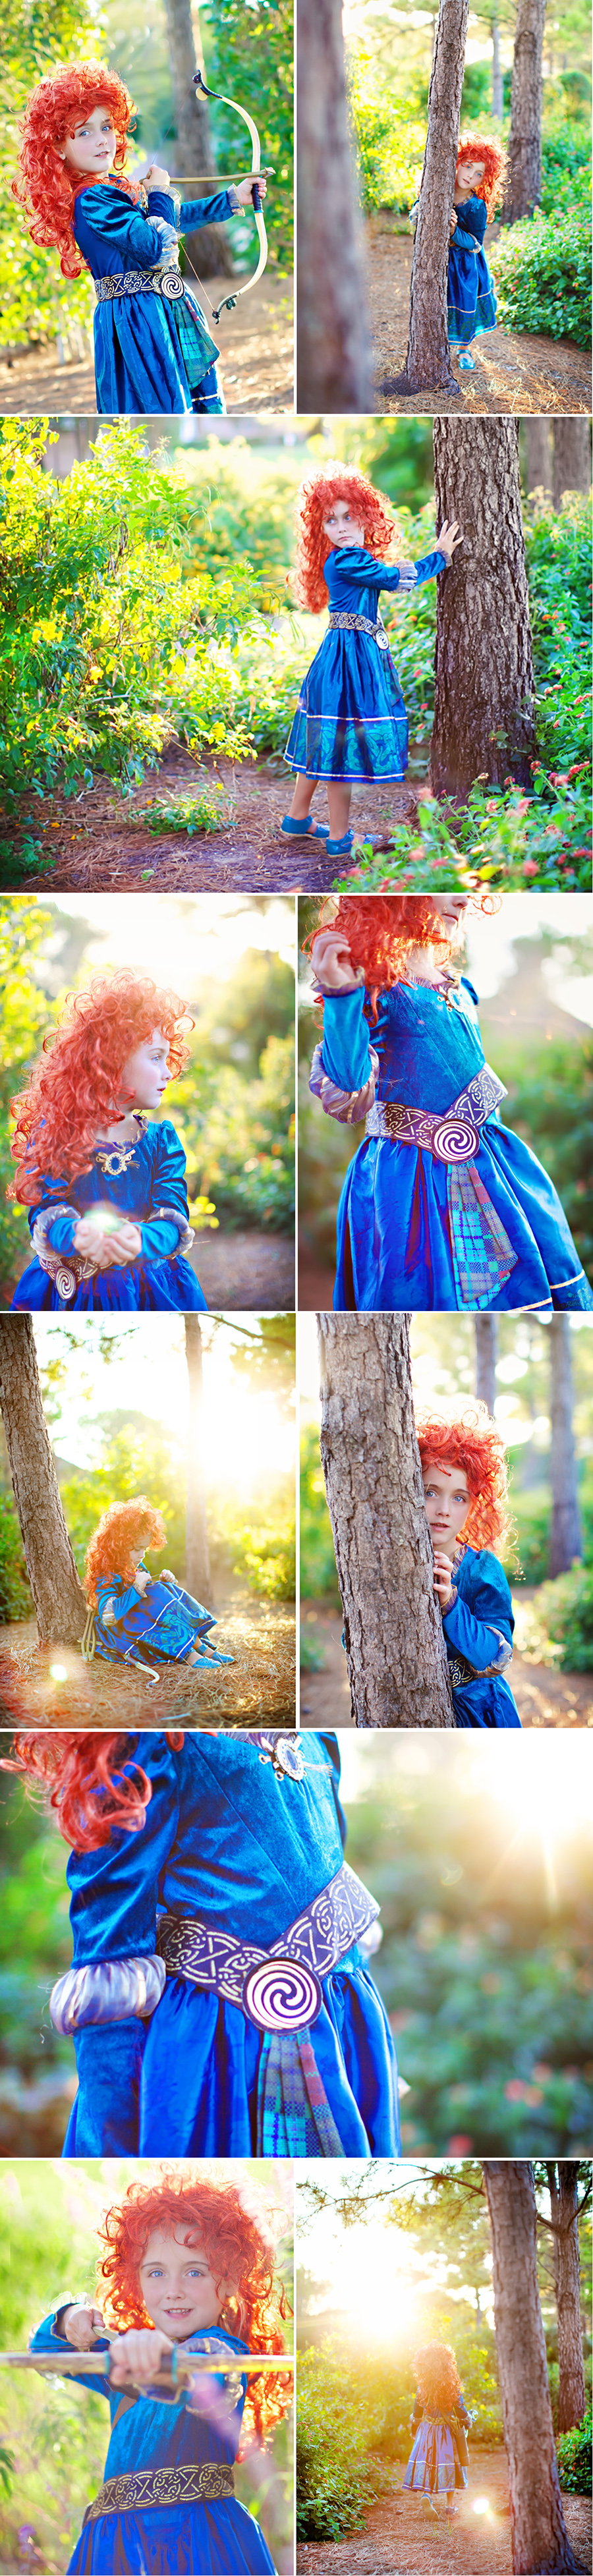 PrincessMerida